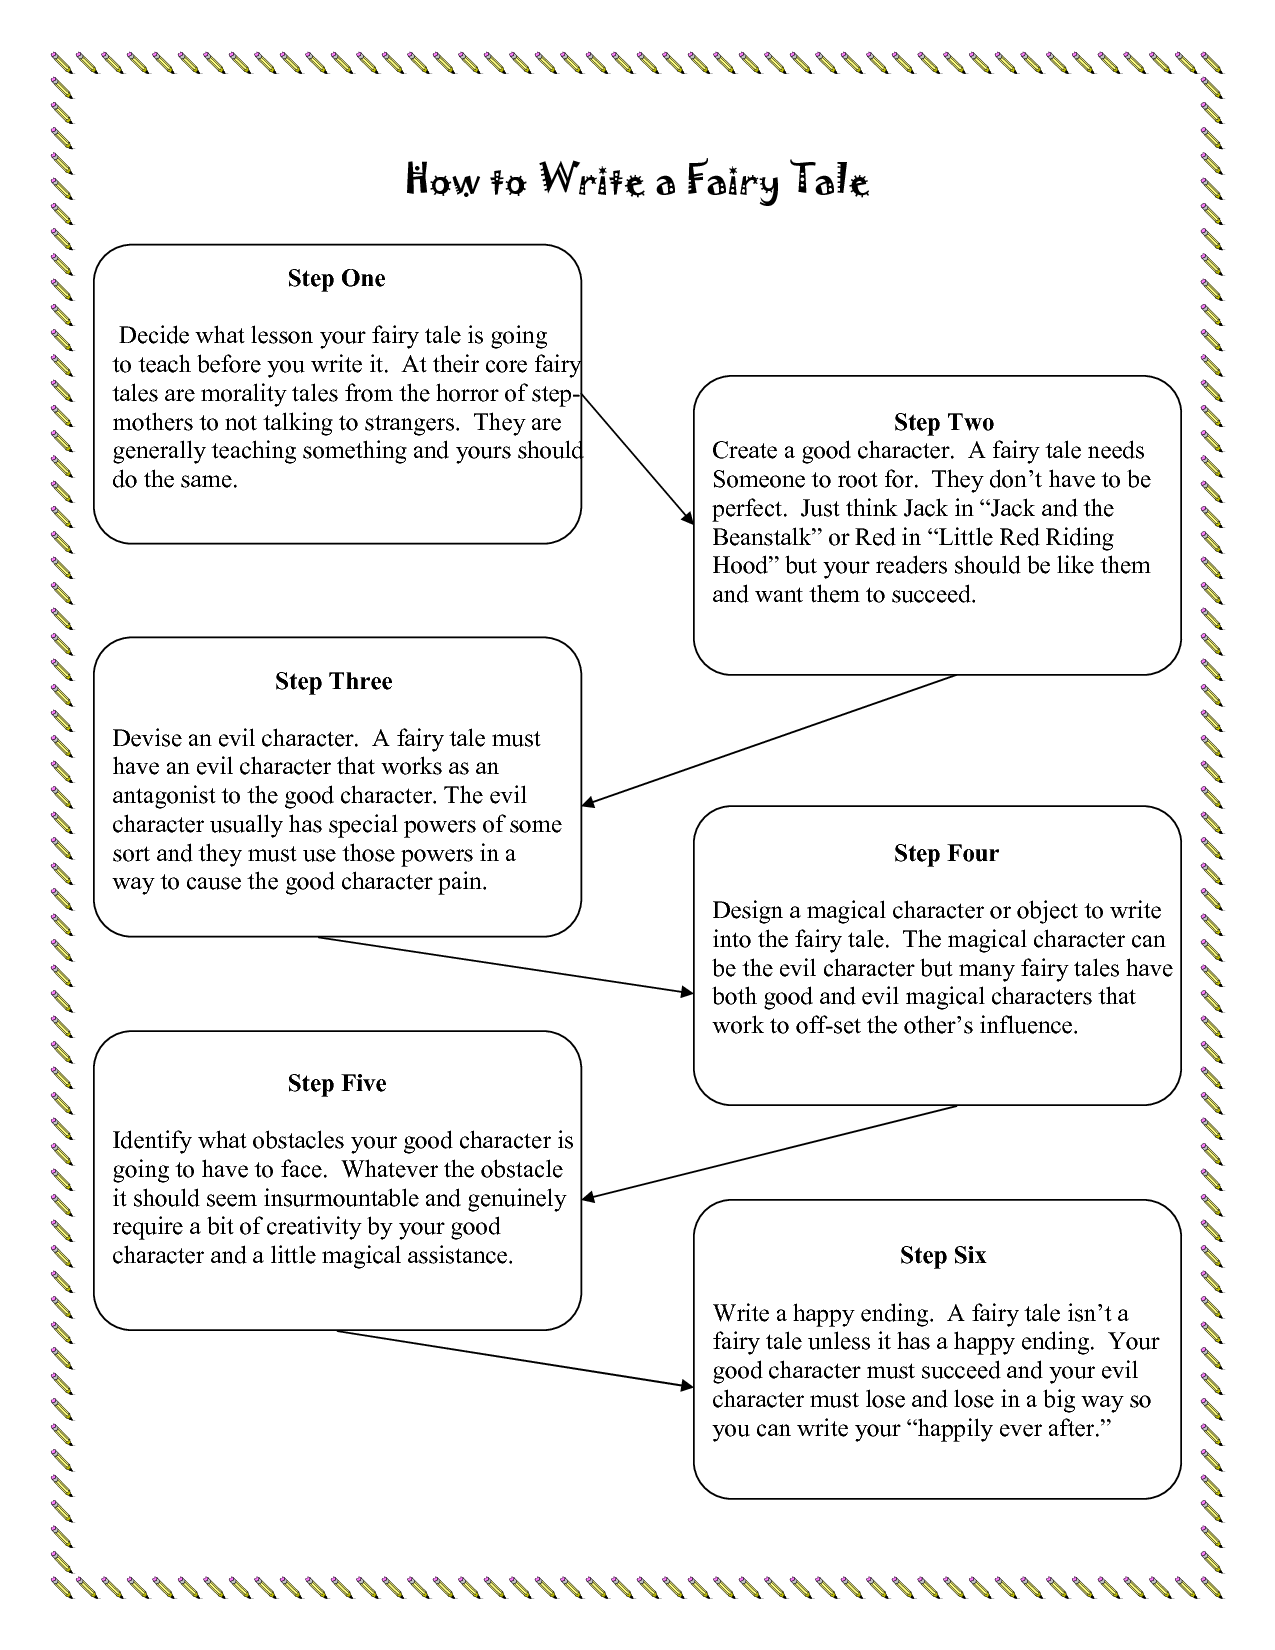 Steps To Write A Fairy Tale